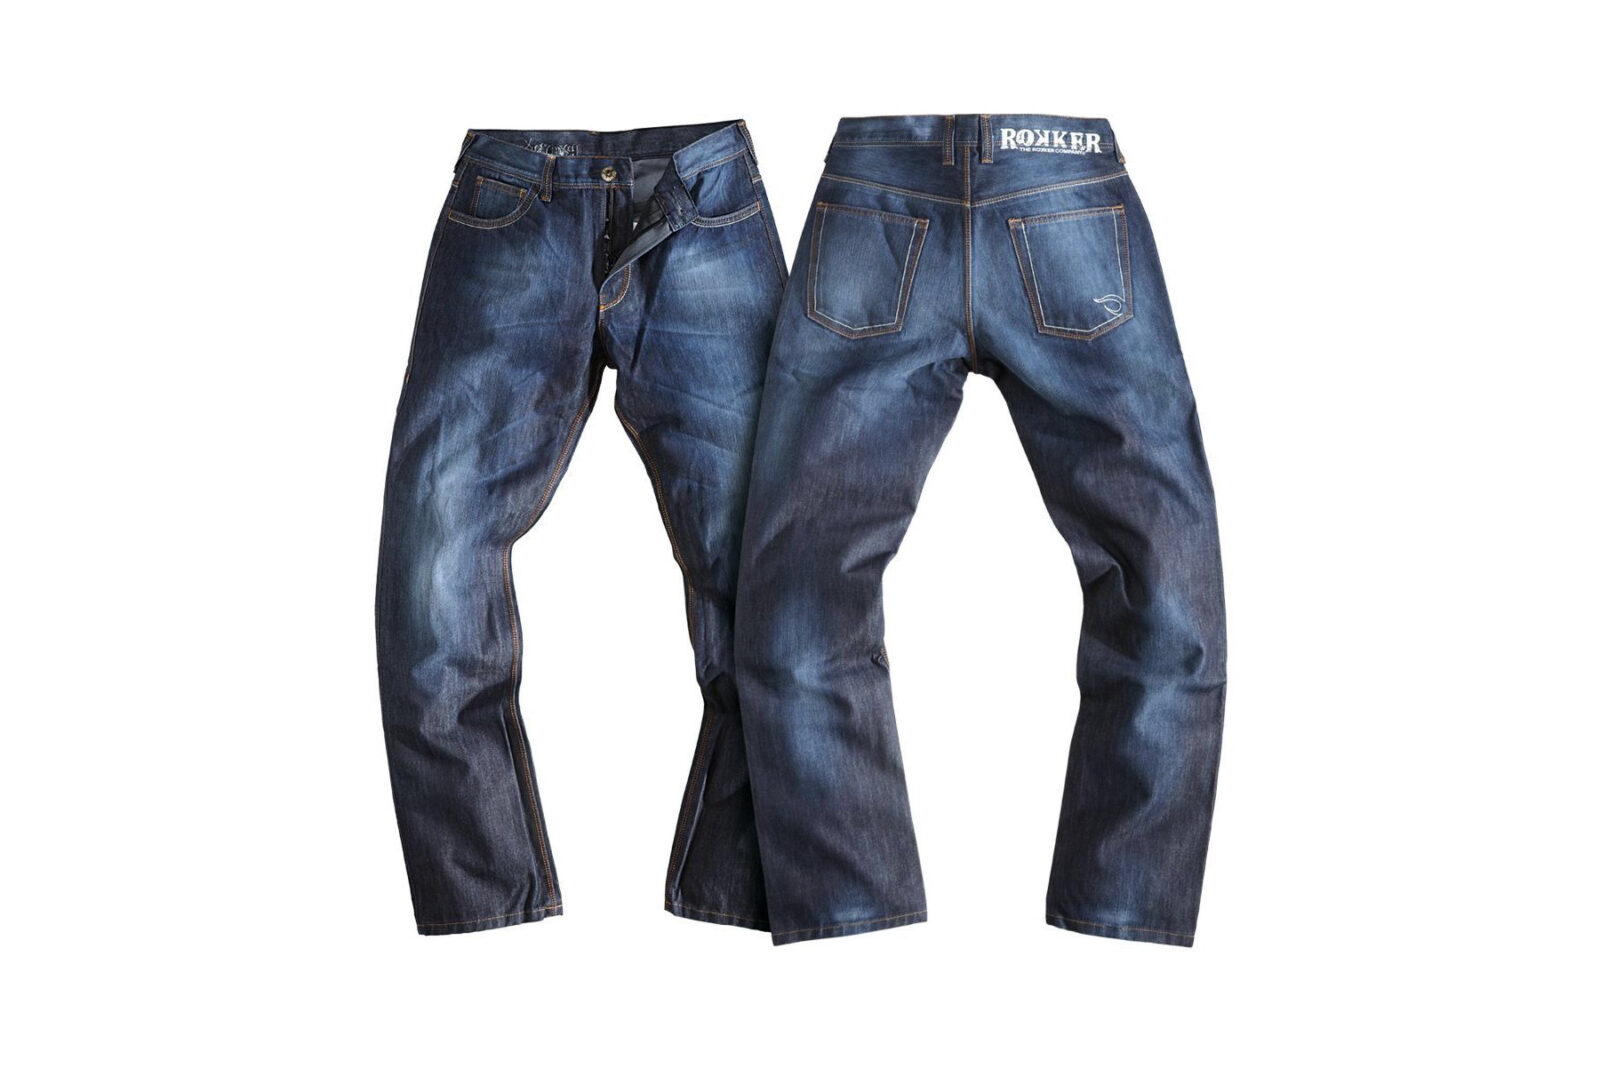 Rokker Revolution Waterproof Jeans 1600x1084 - Rokker Revolution Waterproof Motorcycle Jeans